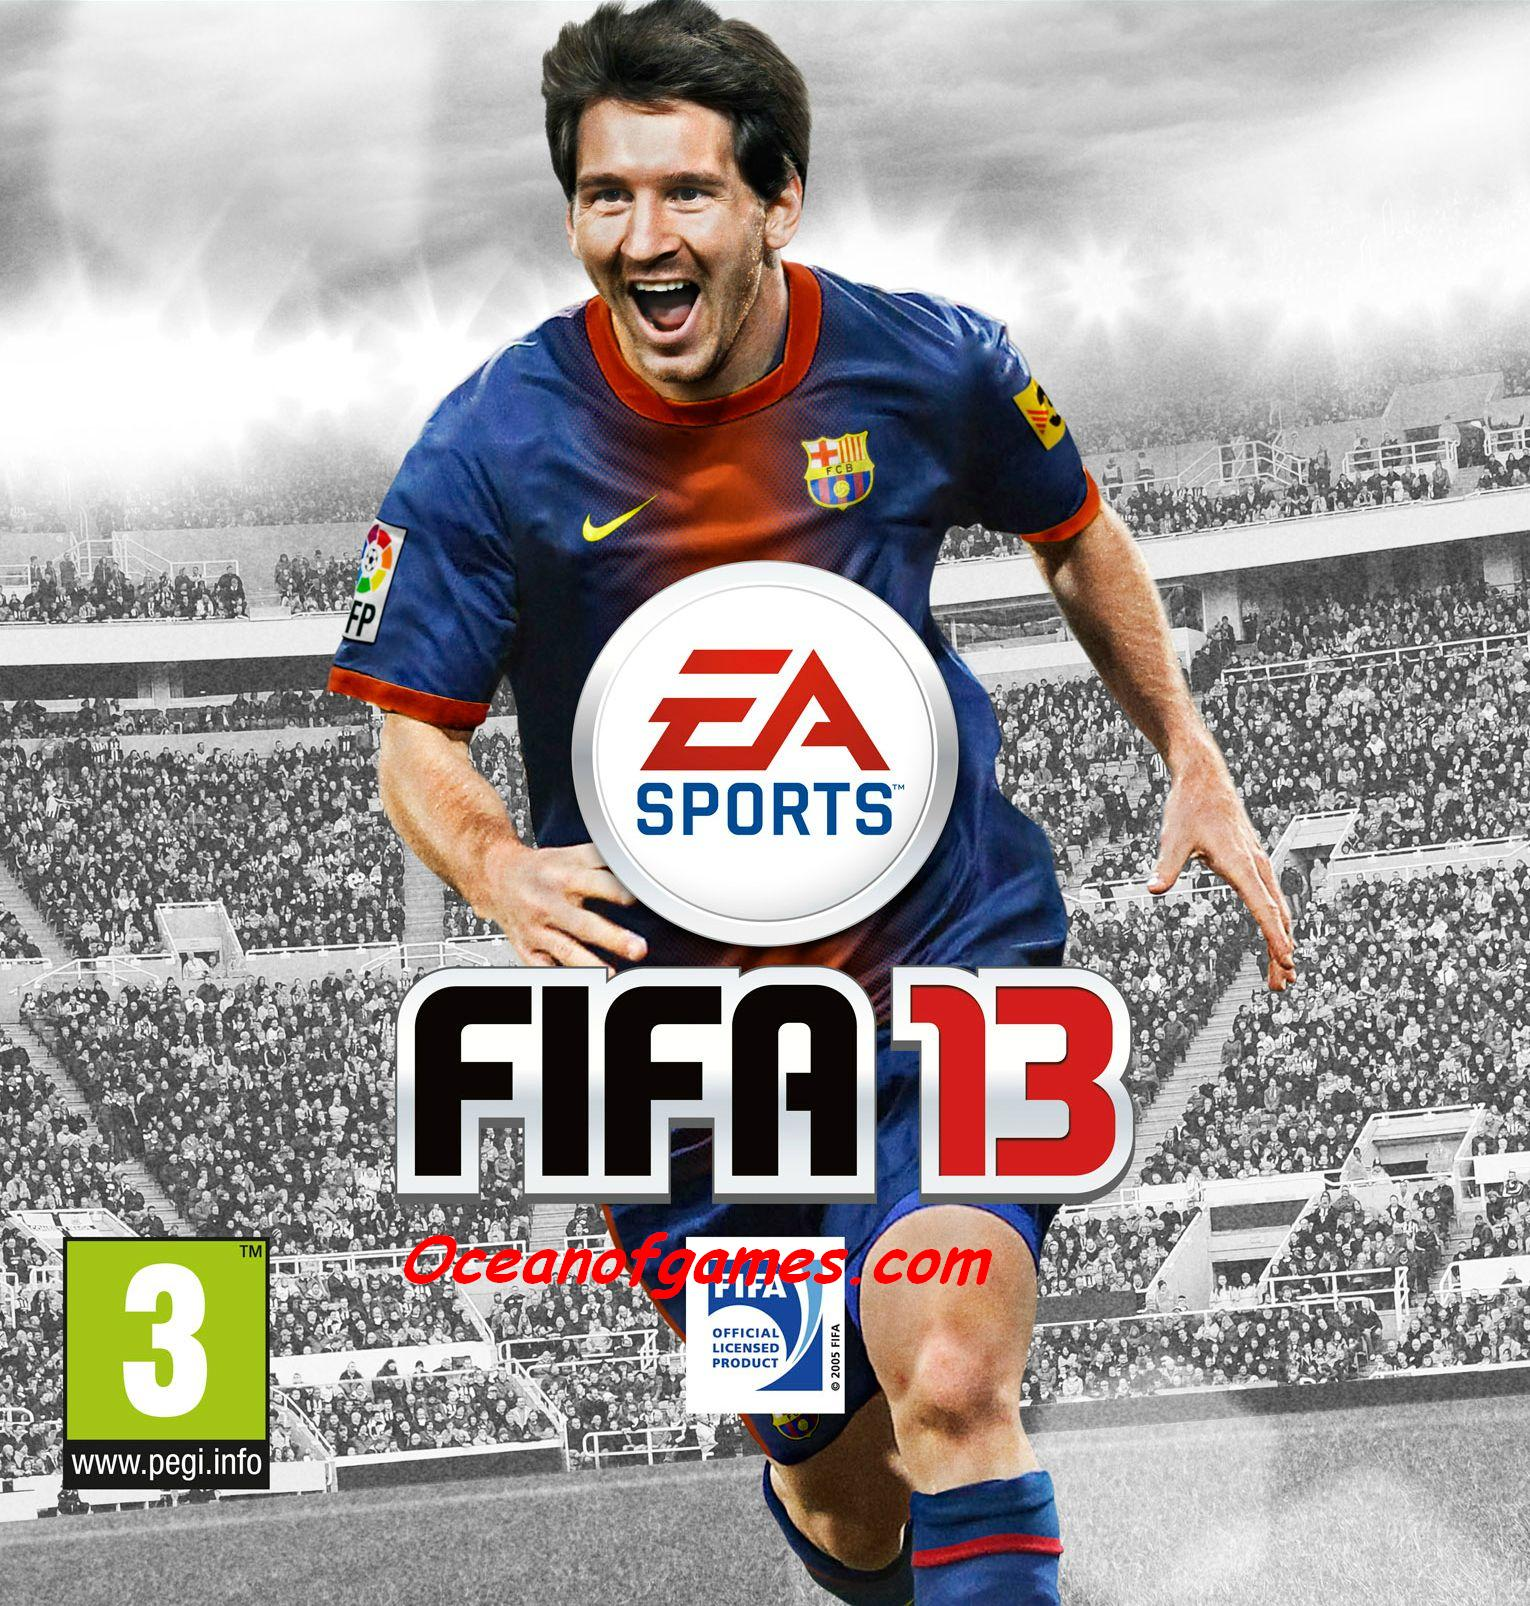 Fifa 13 game download for android. Fifa mobile on ios and android.